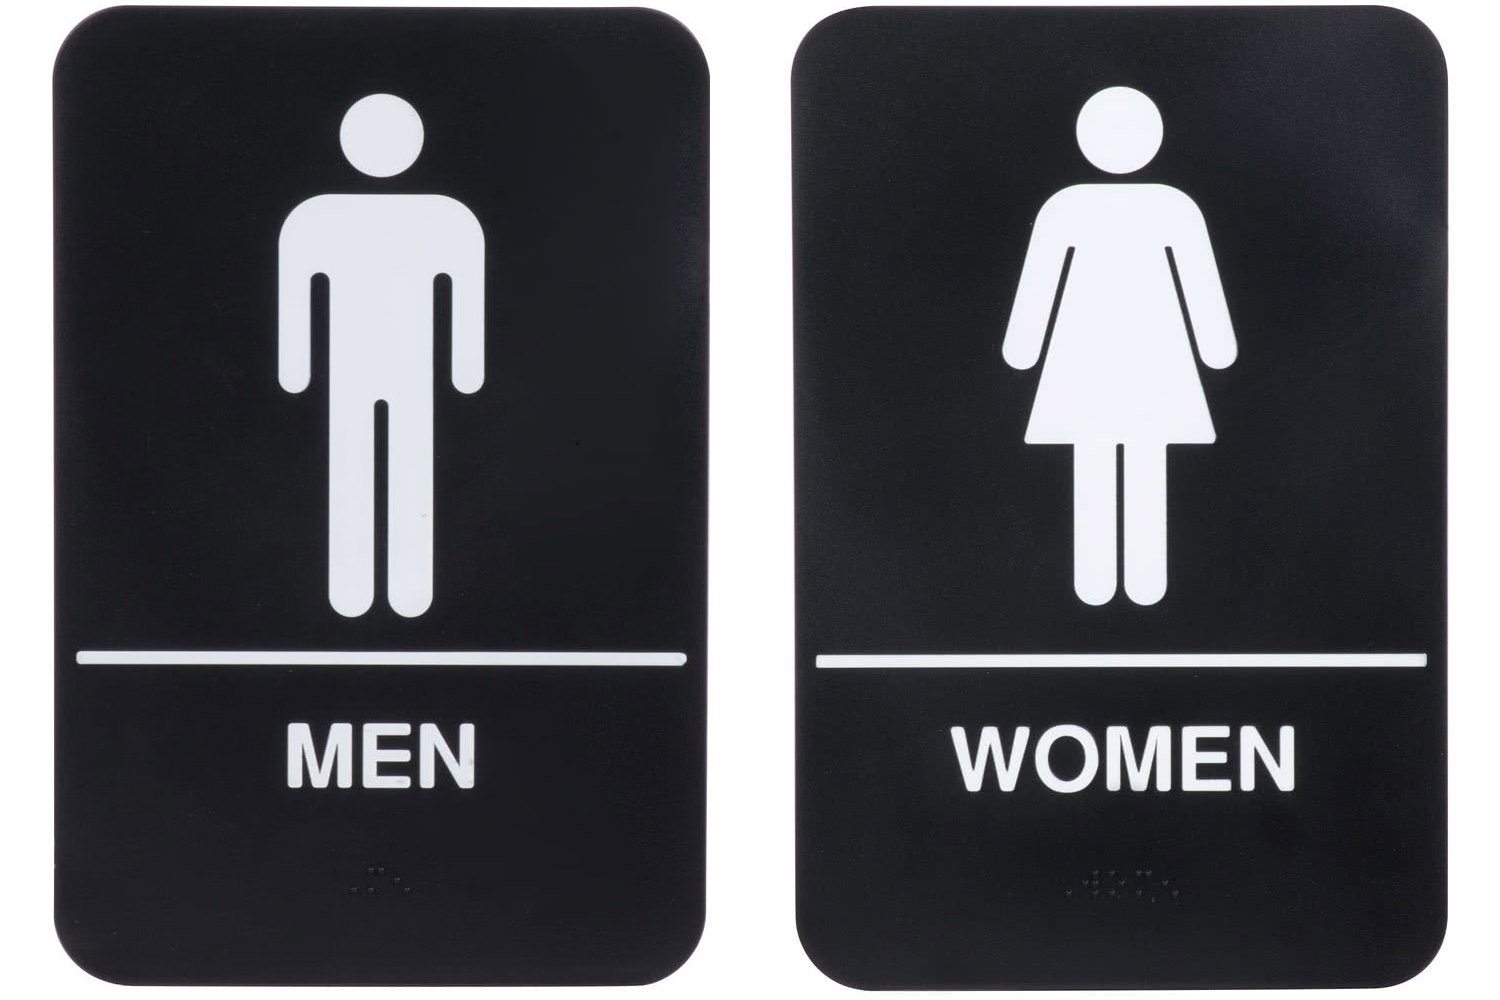 ''Men'' & ''Women'' Restrooms Sign Set with Braille, Toilet Door Plate for Business Restaurant, 6'' x 9''